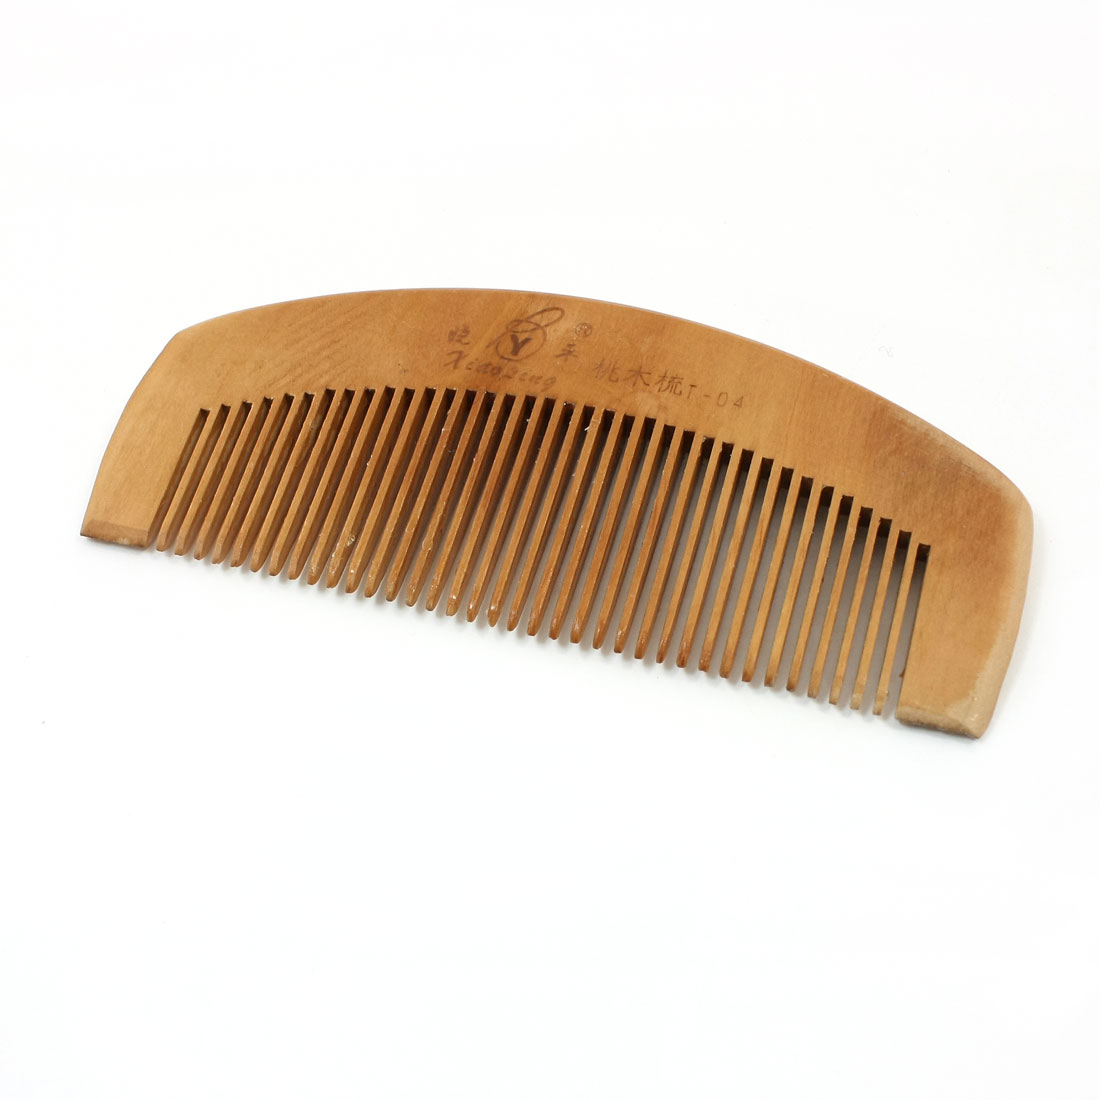 6.2cm Width Brown 36 Teeth Healthy Hairs Care Peach Wooden Hair Comb